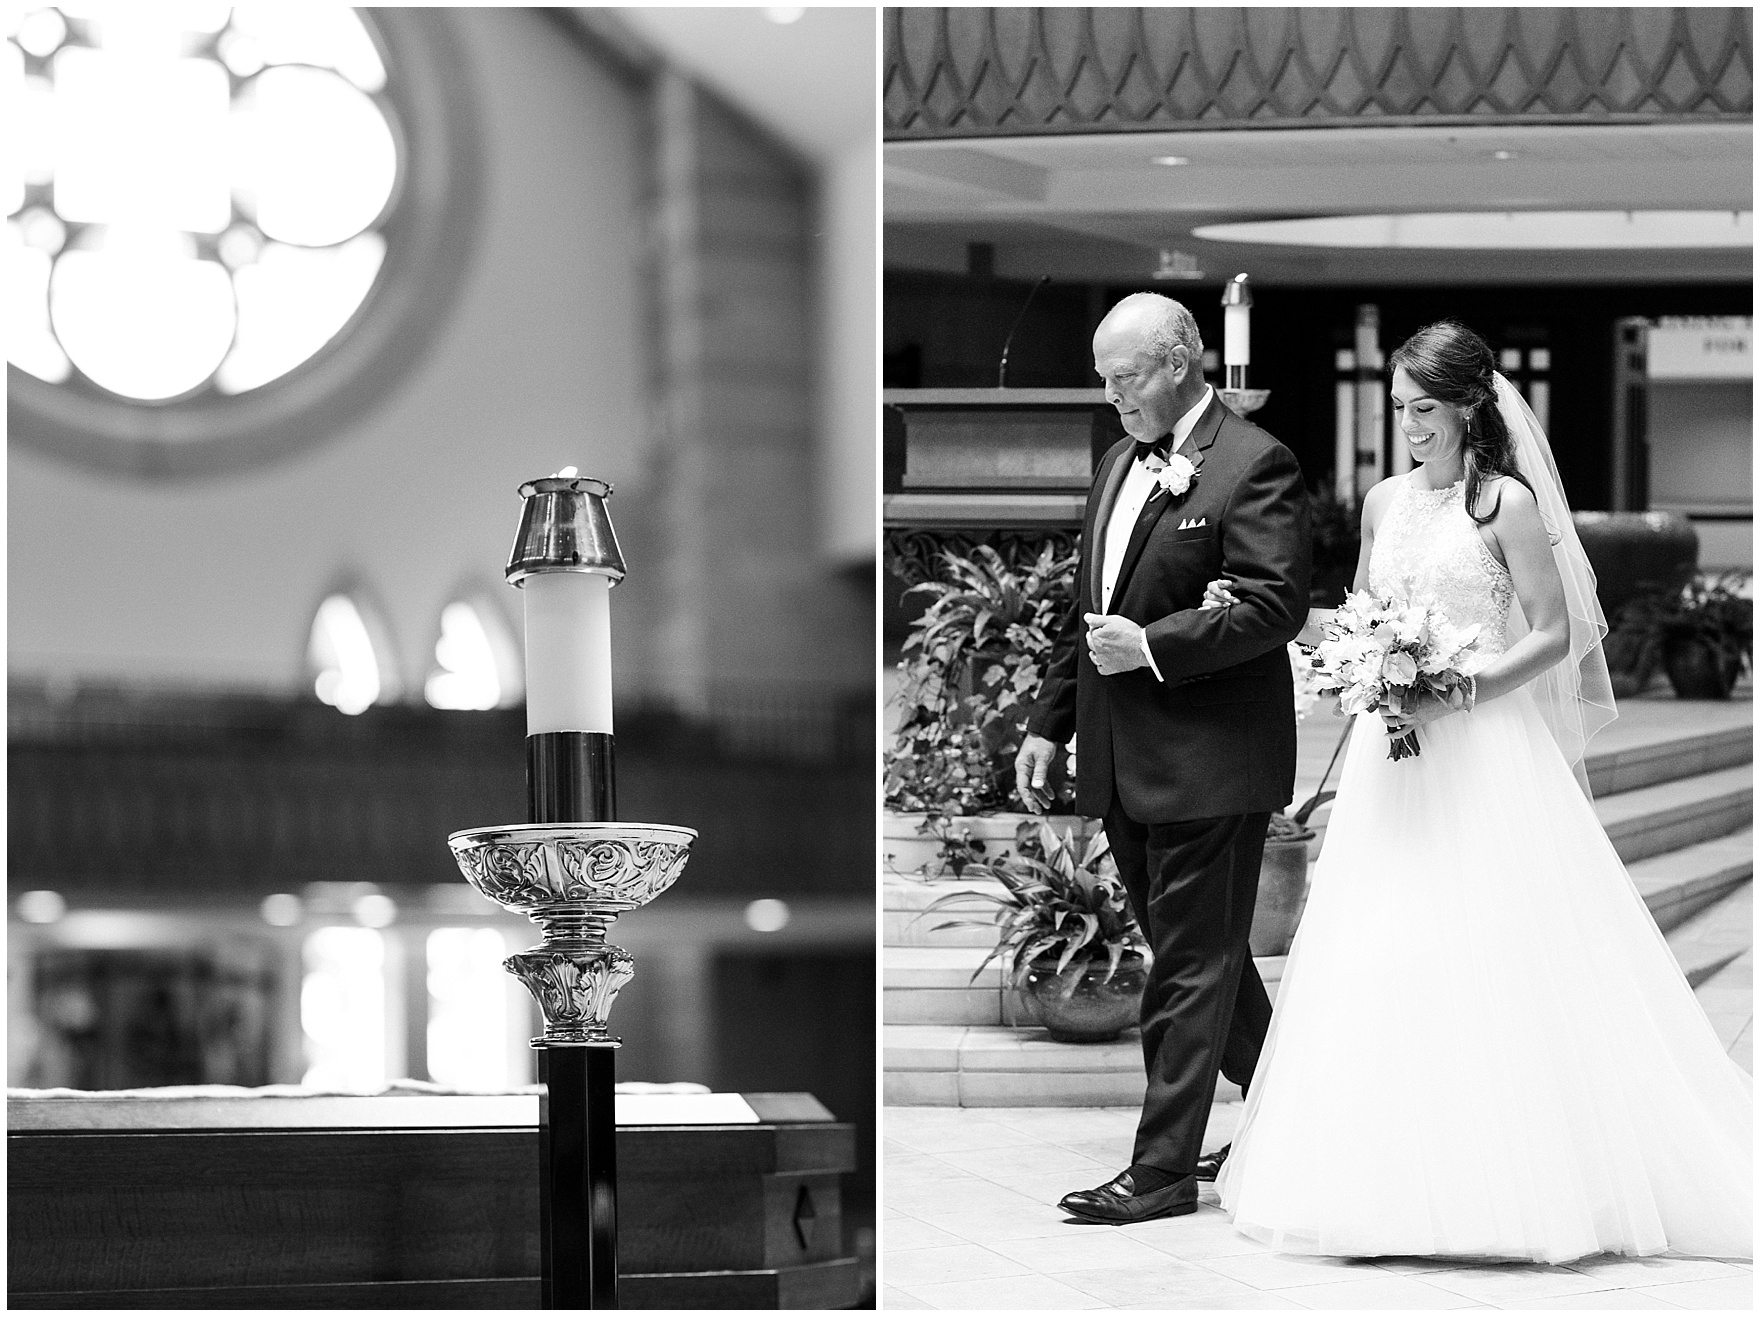 The bride walks down the aisle with her father during the ceremony at St. Anne's Catholic Community, for a Biltmore Country Club Barrington wedding.